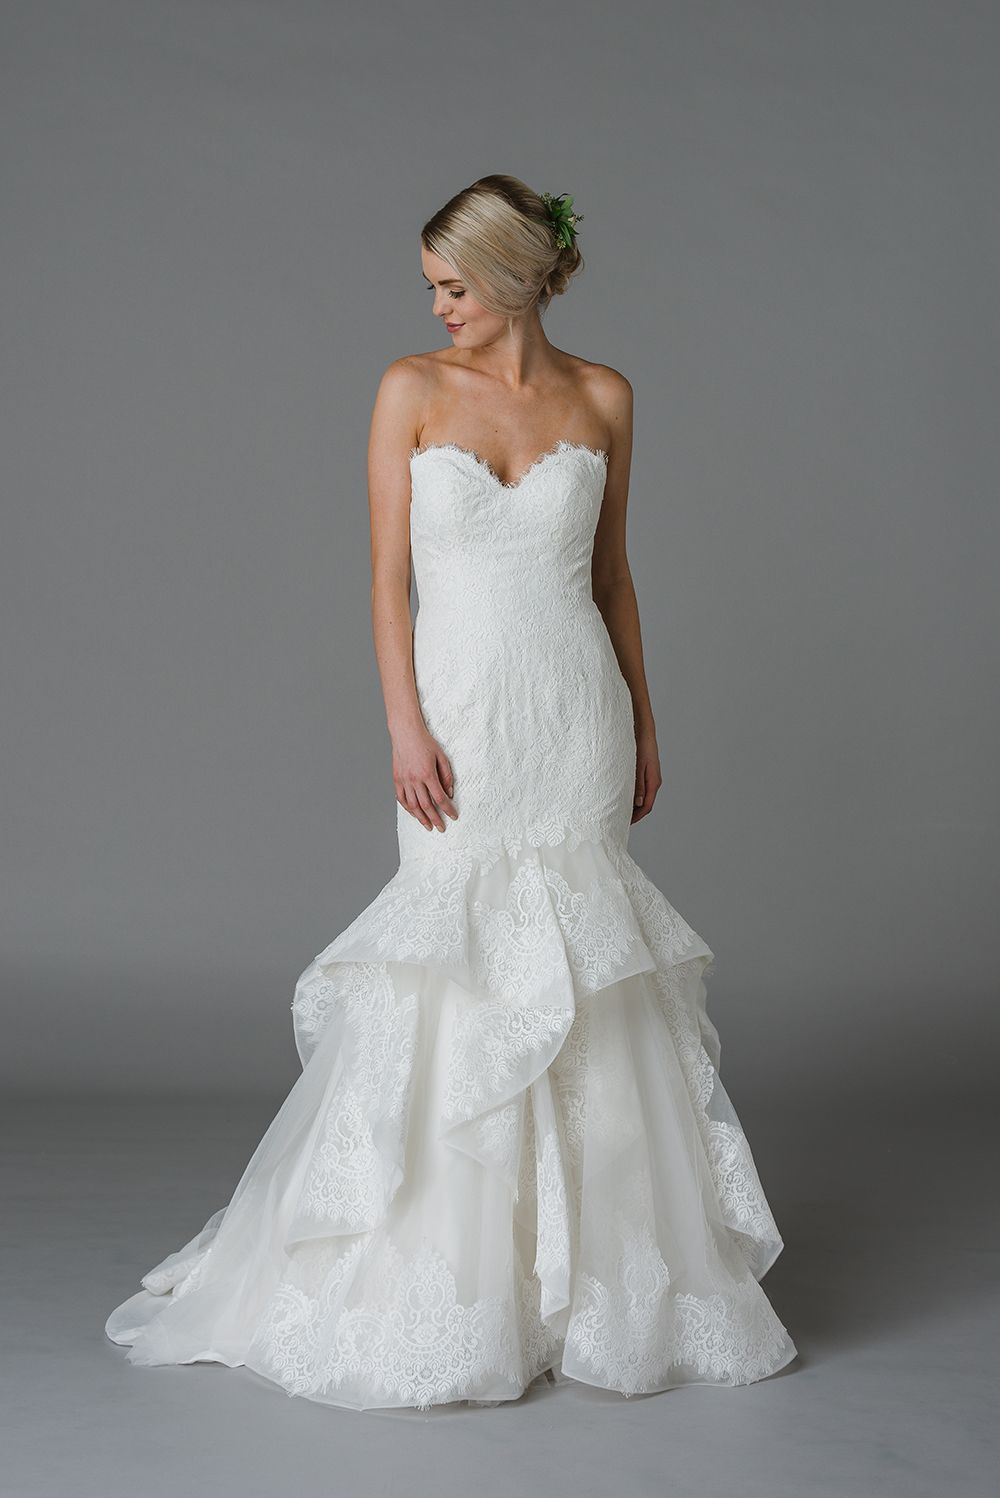 Jasper by Lis Simon available at Bucci's Bridal in